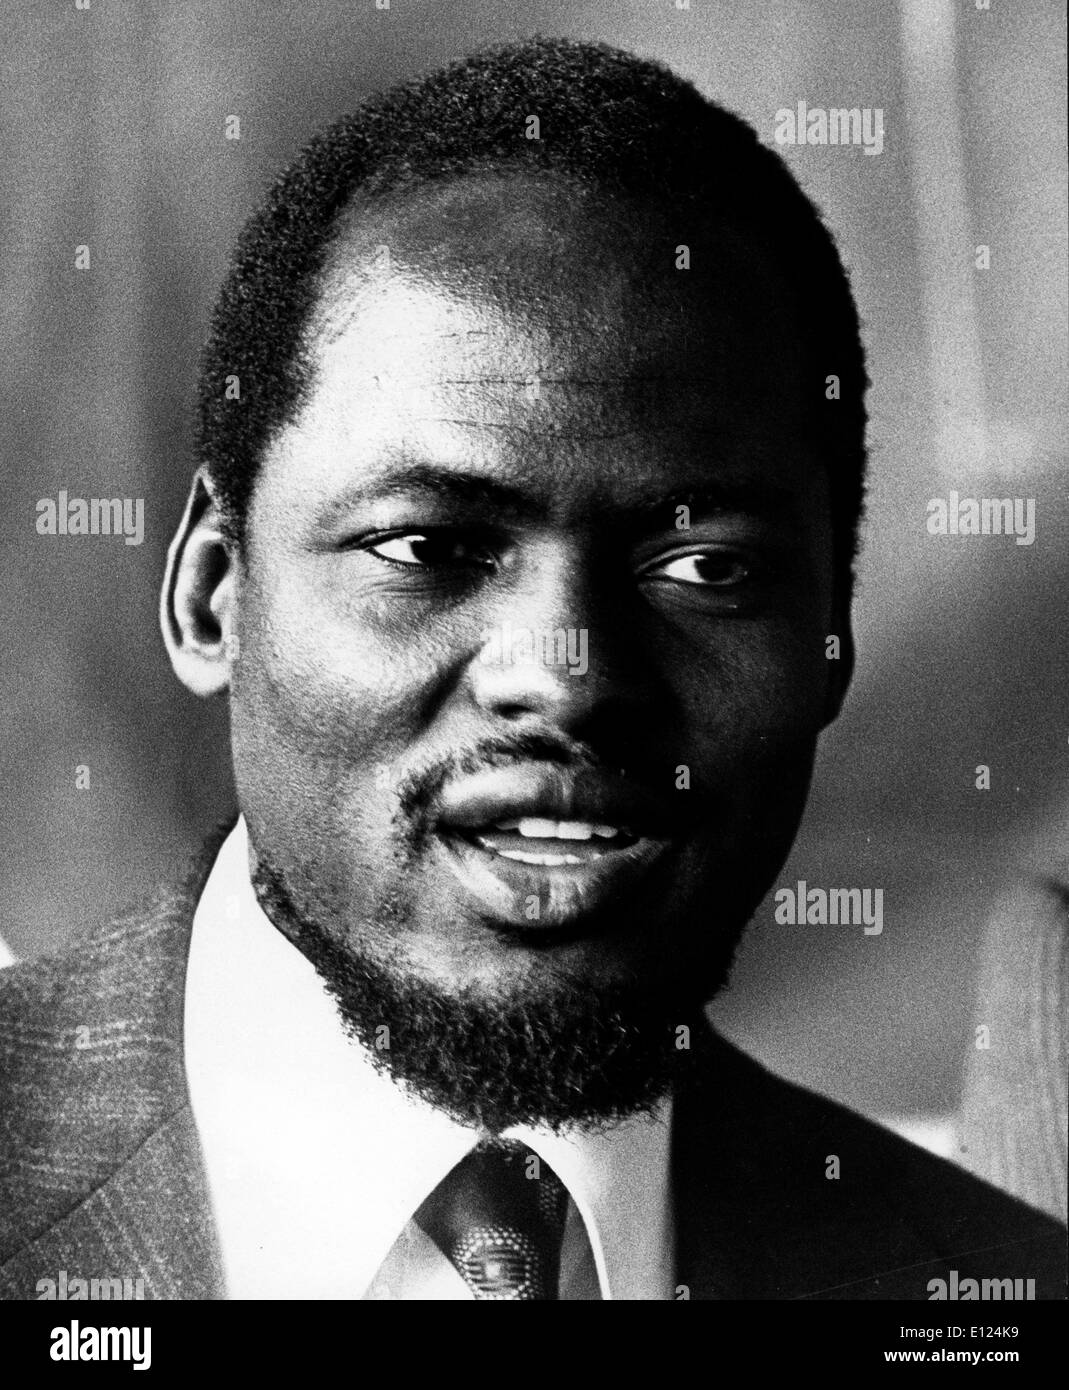 Jan. 01, 1986 - File Photo: circa 1980s, location unknown. JOAQUIM ALBERTO CHISSANO (born 22 October 1939) served as the second - Stock Image